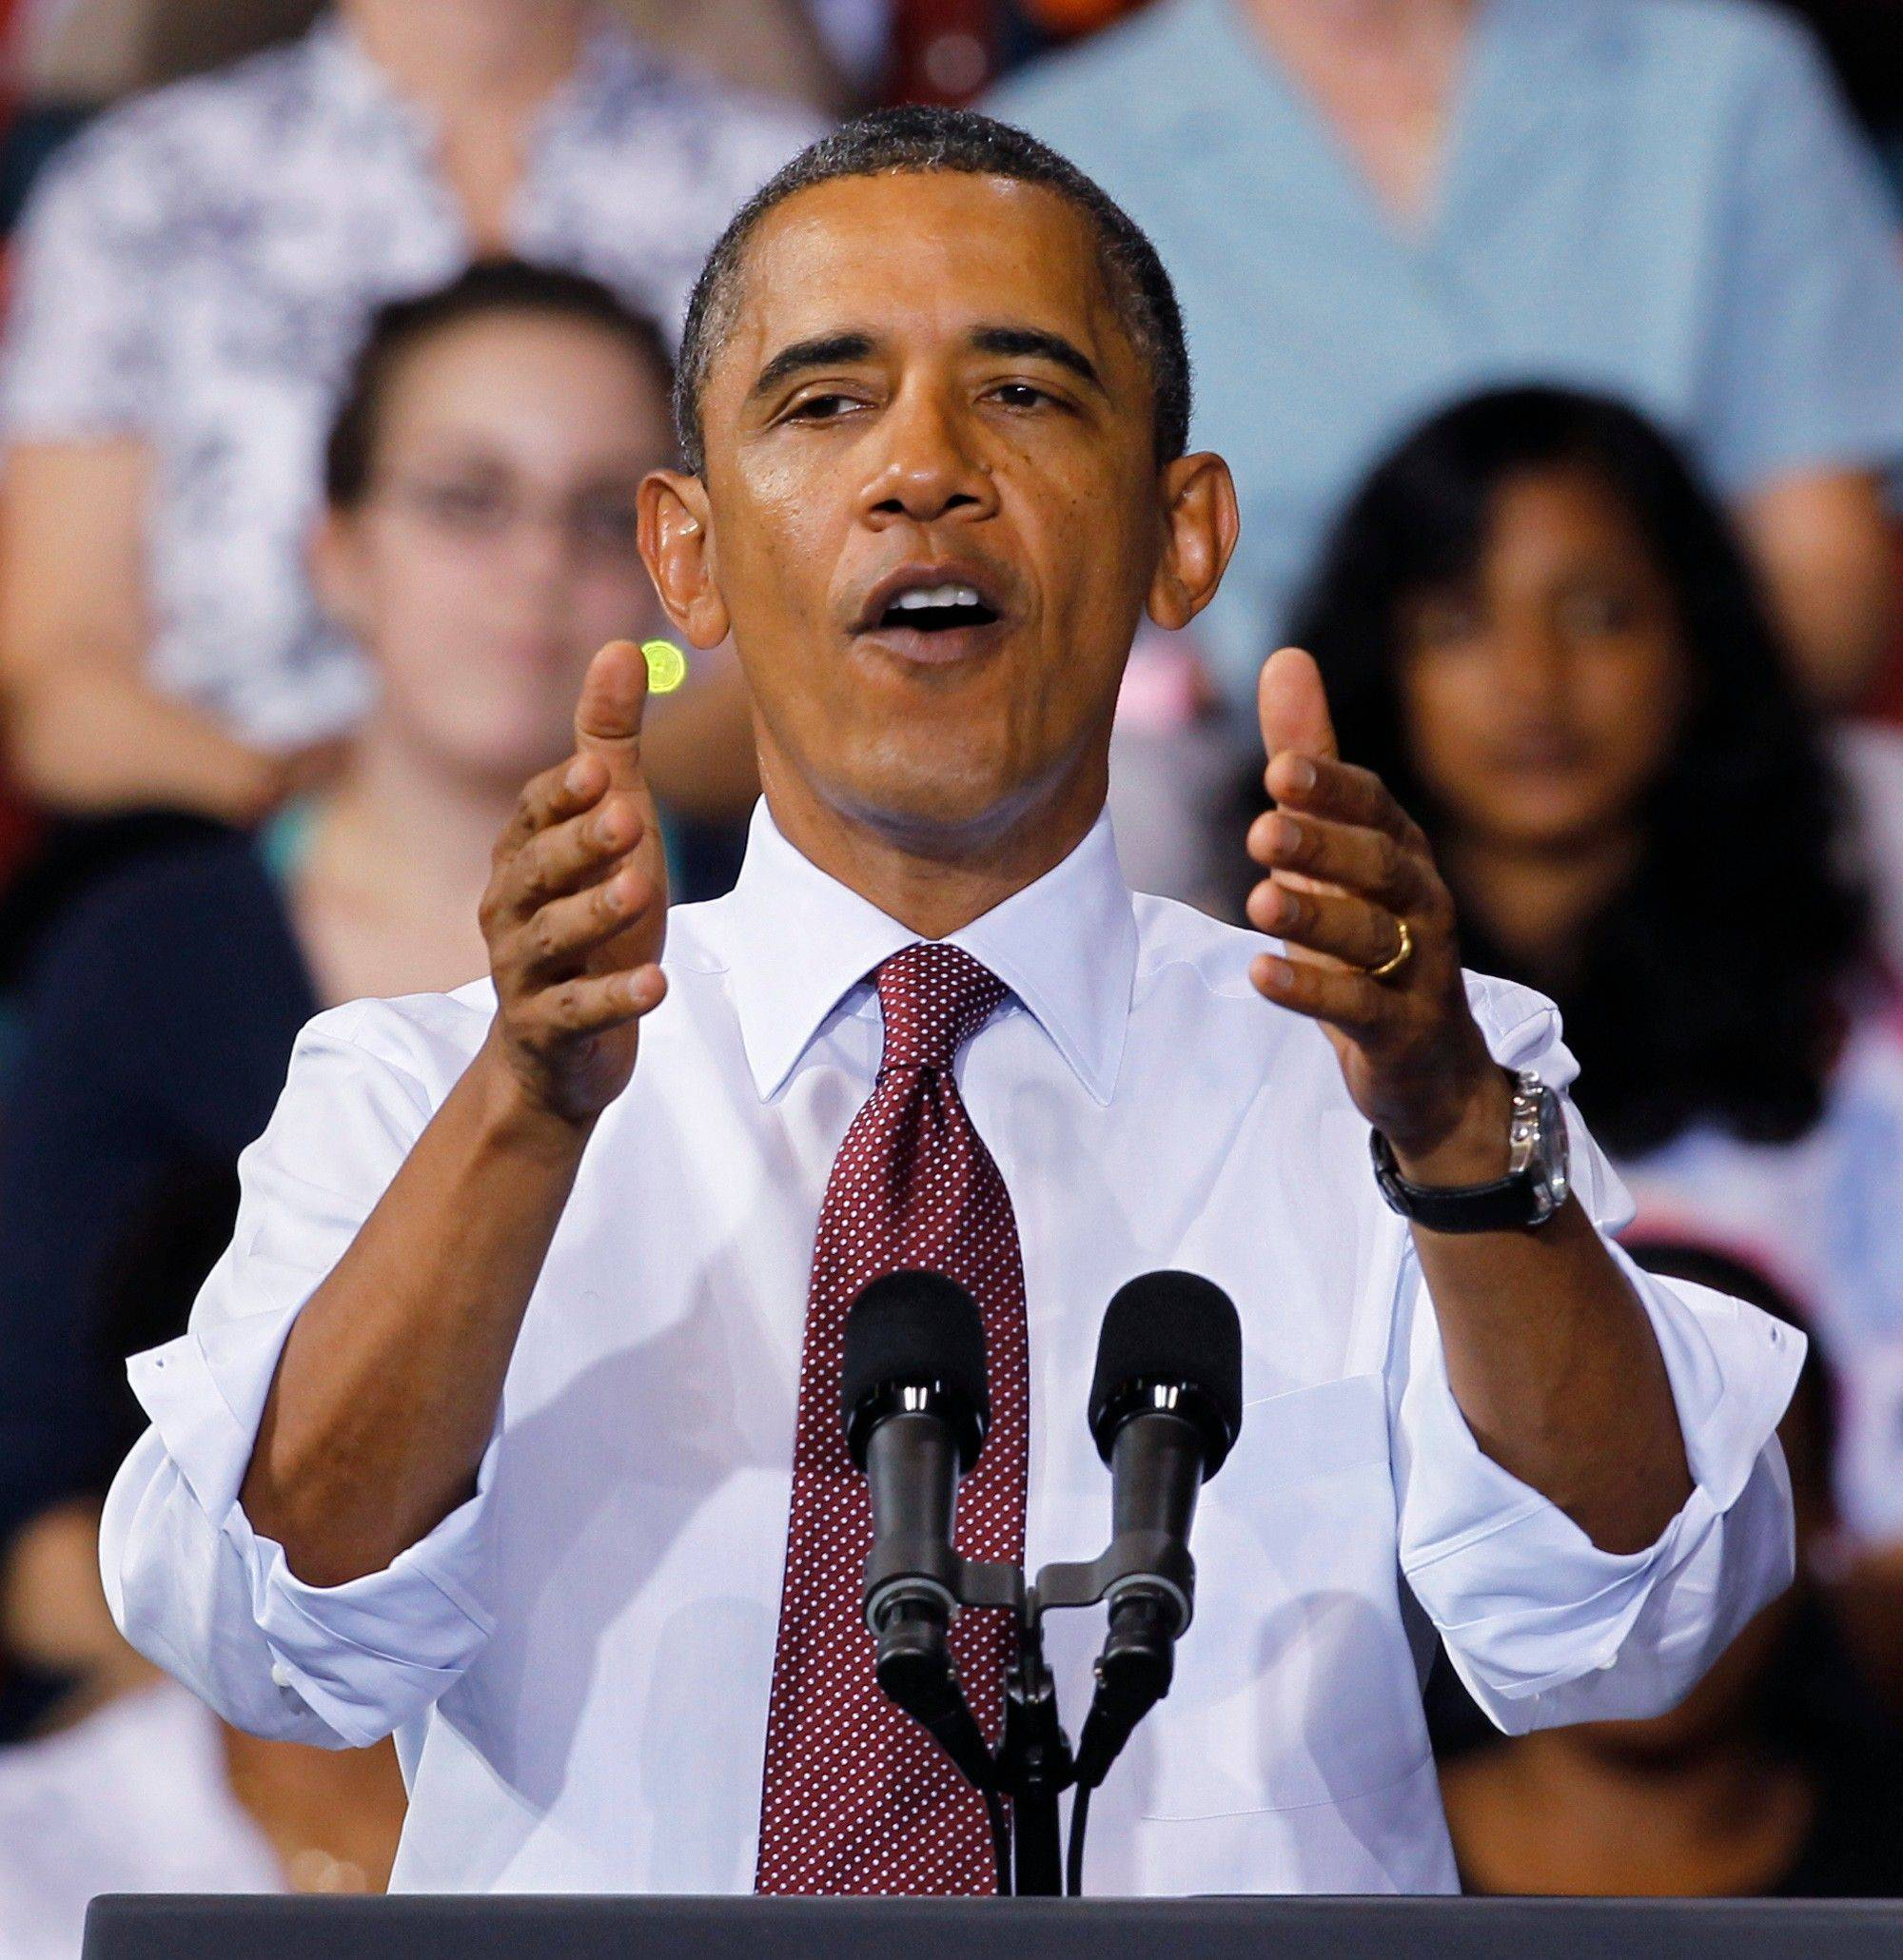 President Barack Obama urges voters to get behind his new jobs bill during a speech Friday at the University of Richmond in Virginia.